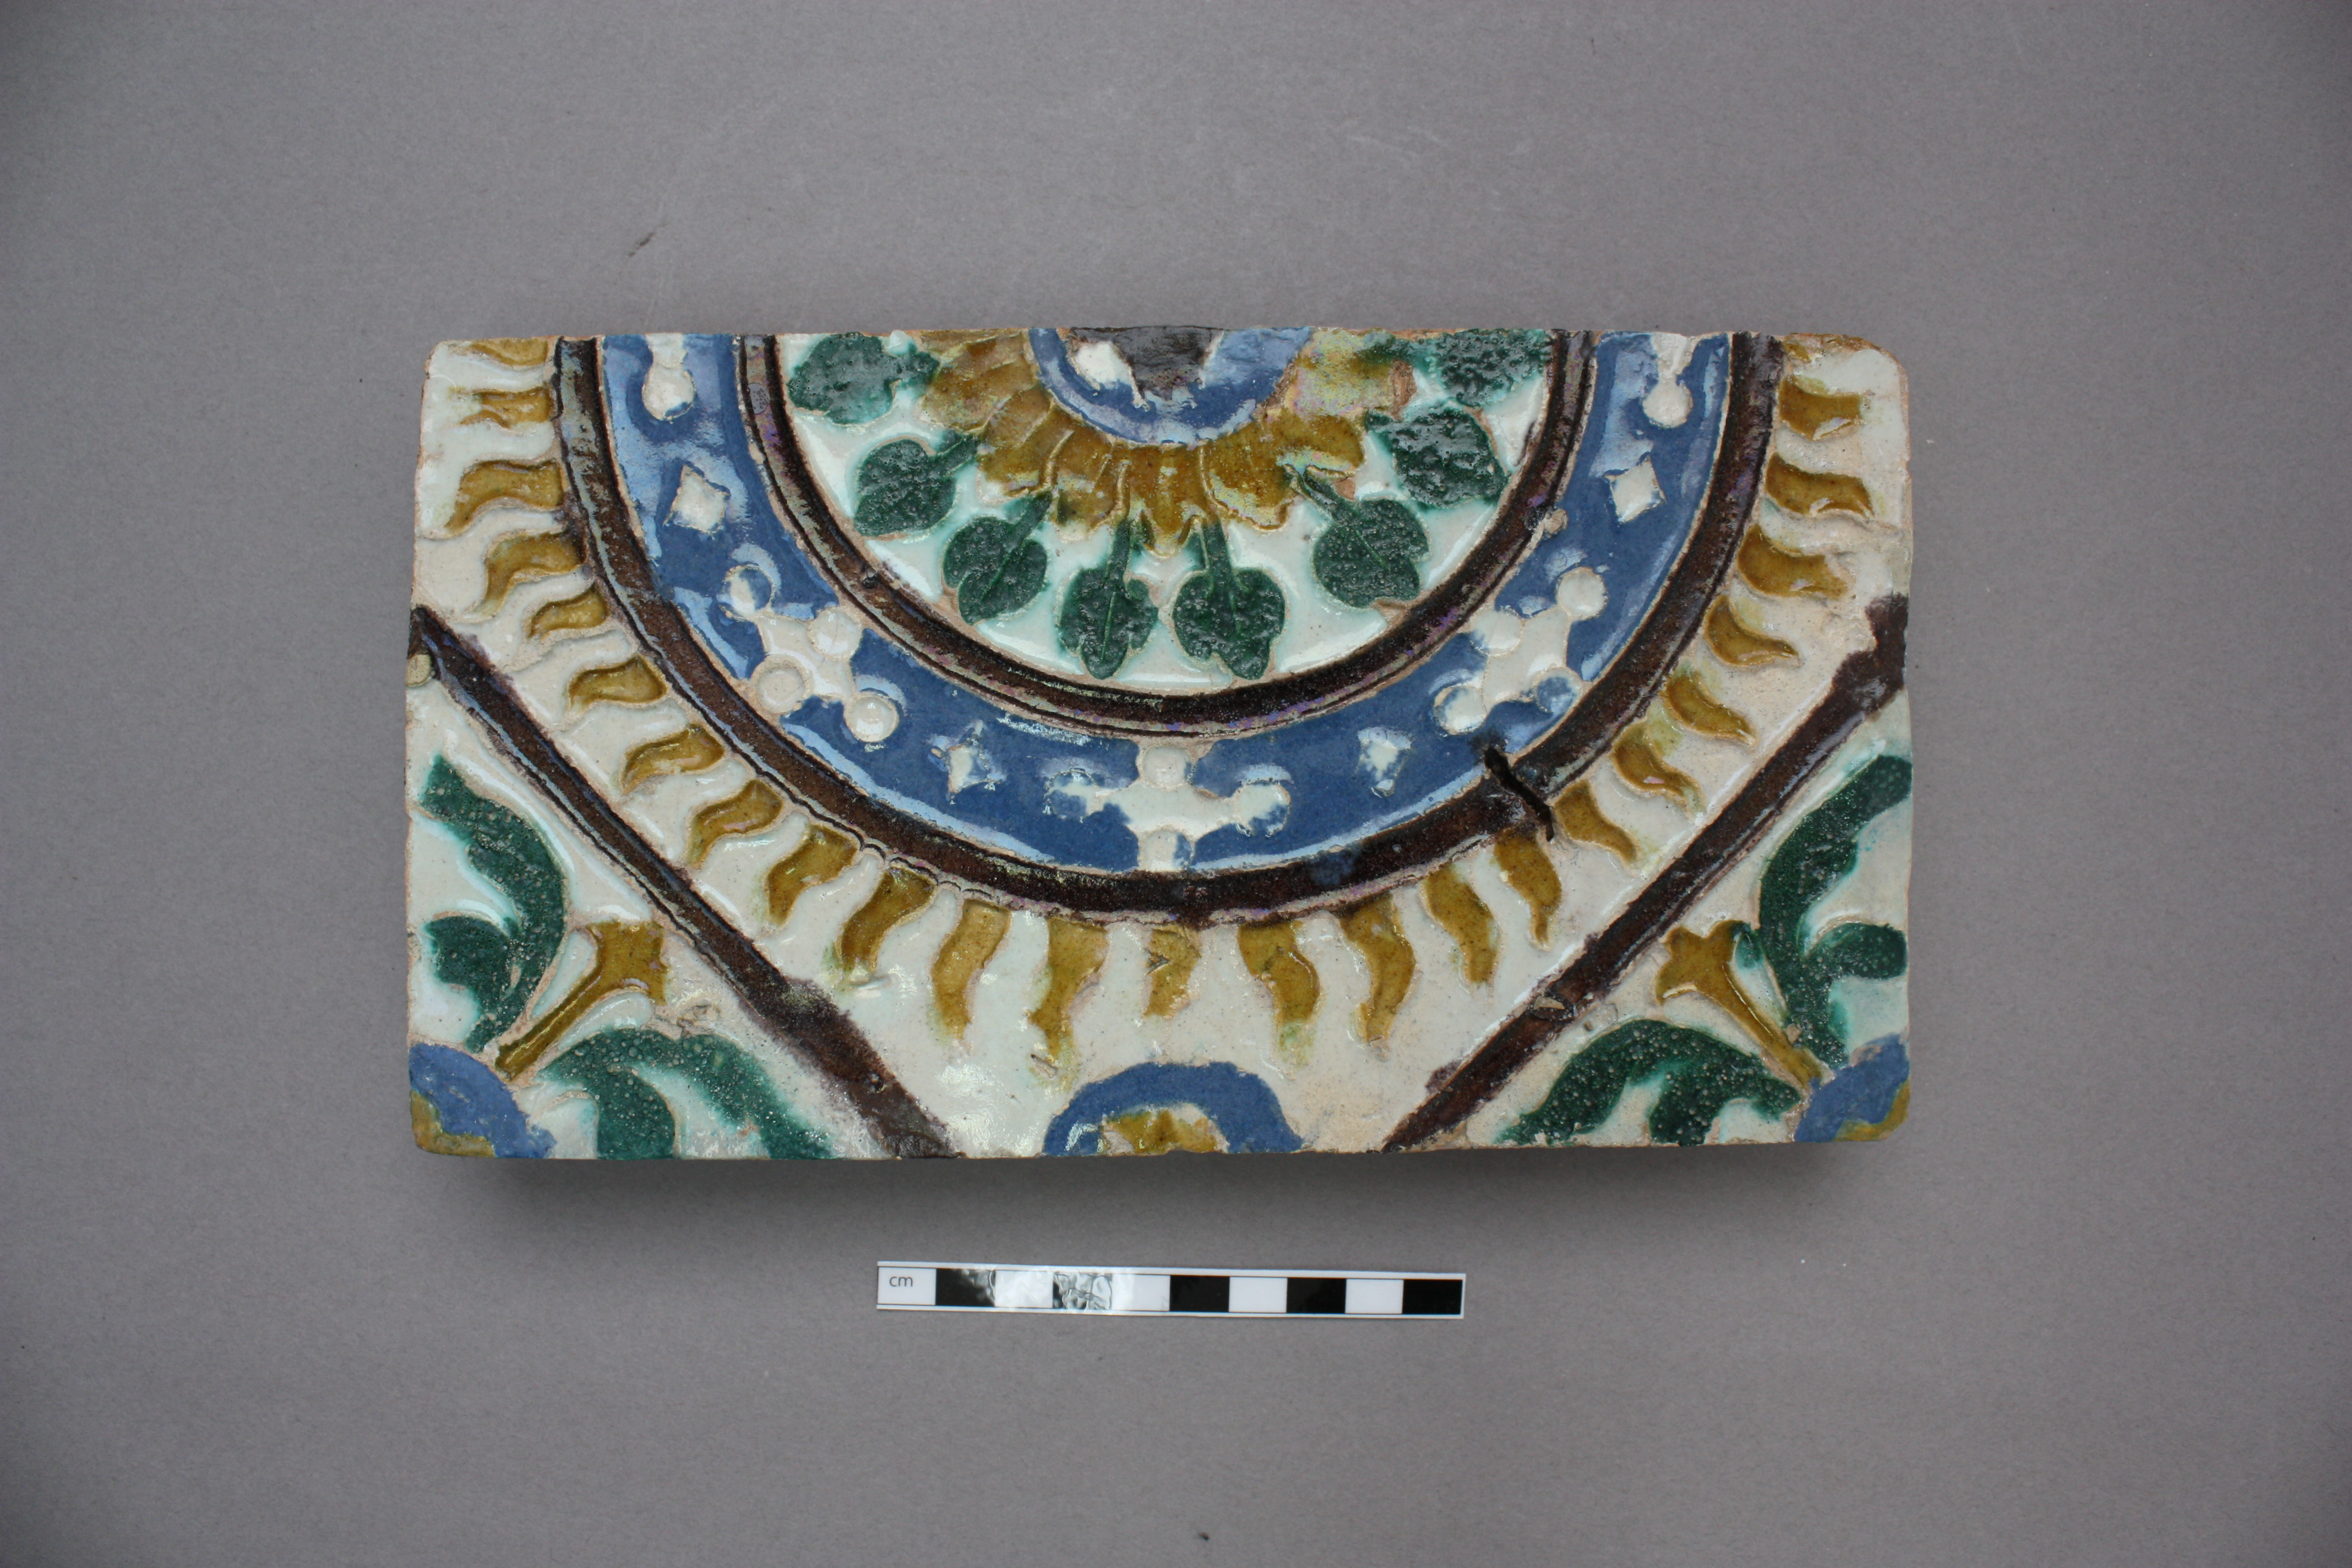 Hispanic Arista tile 04